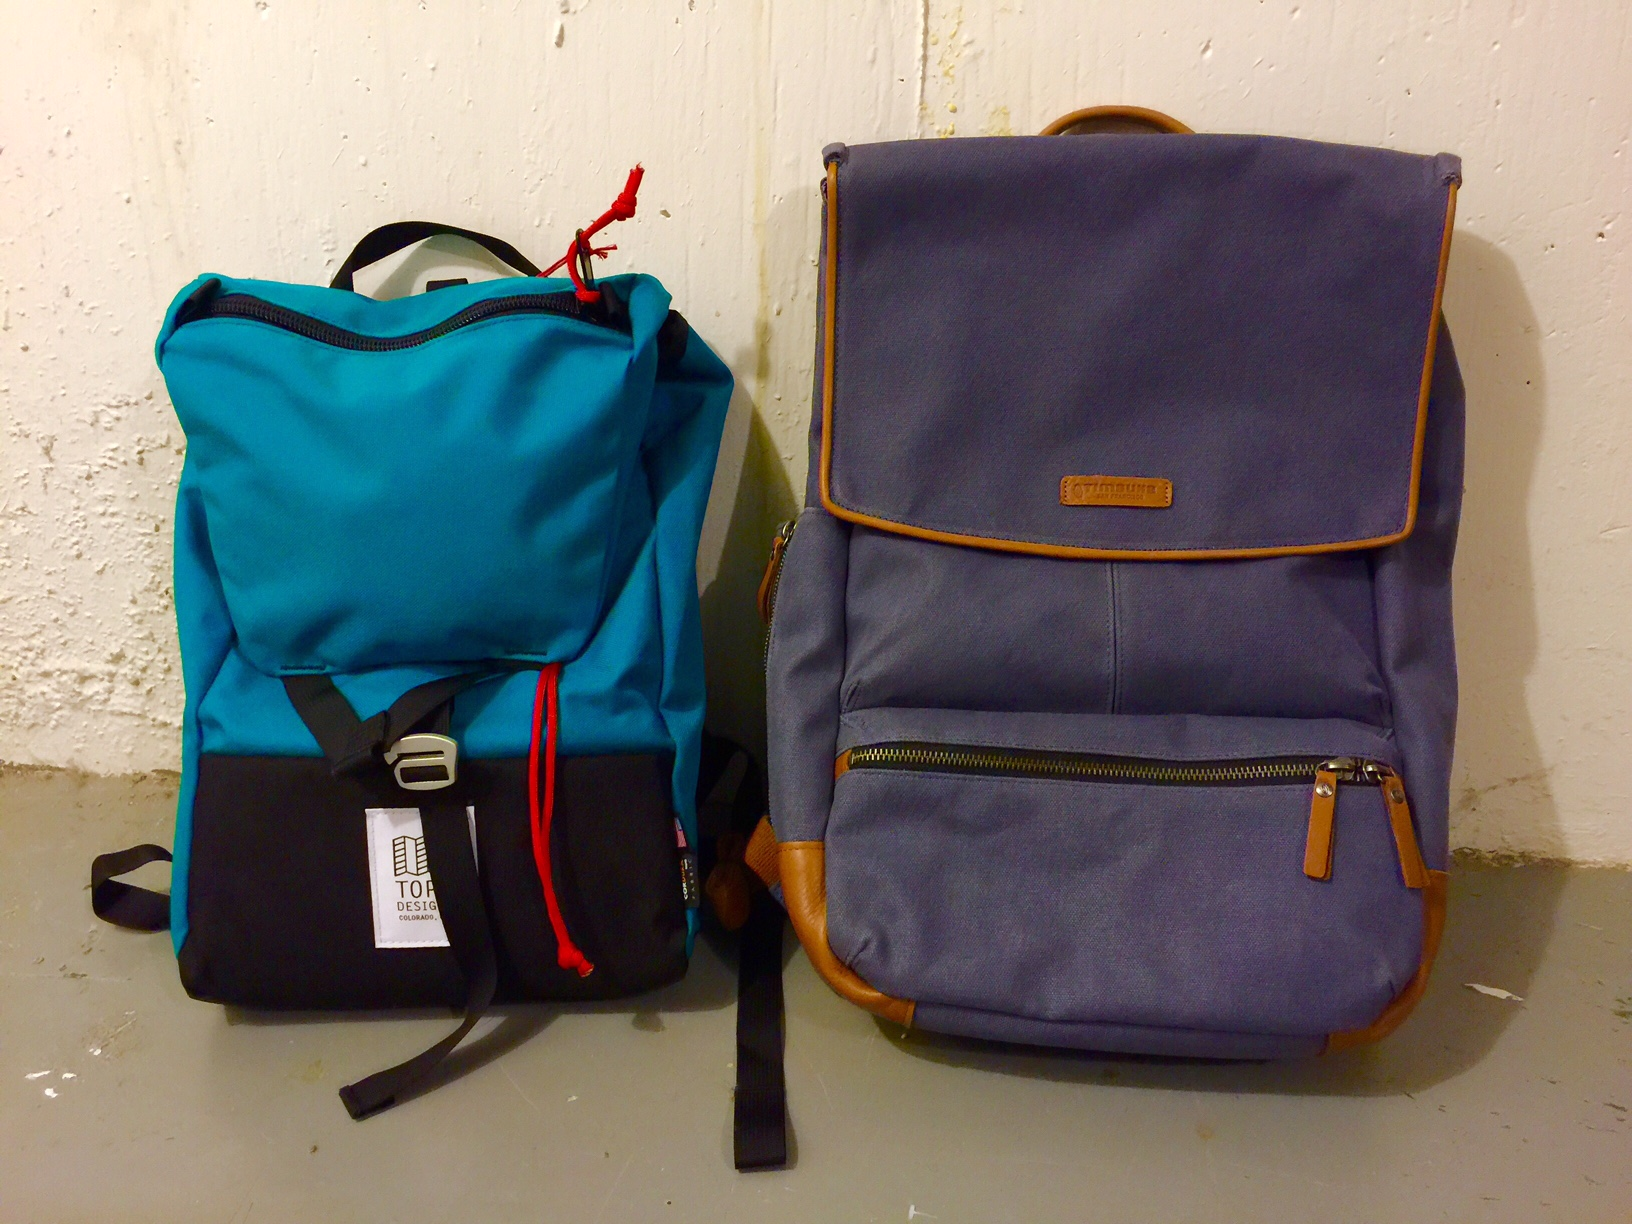 Left: Topo Designs Y-Pack (named for its strap & closure, presumably) in turquoise. Right: Timbuk2 Walker, 2014 model, in midnight.  (Photo color-corrected due to cold, poor lighting.)